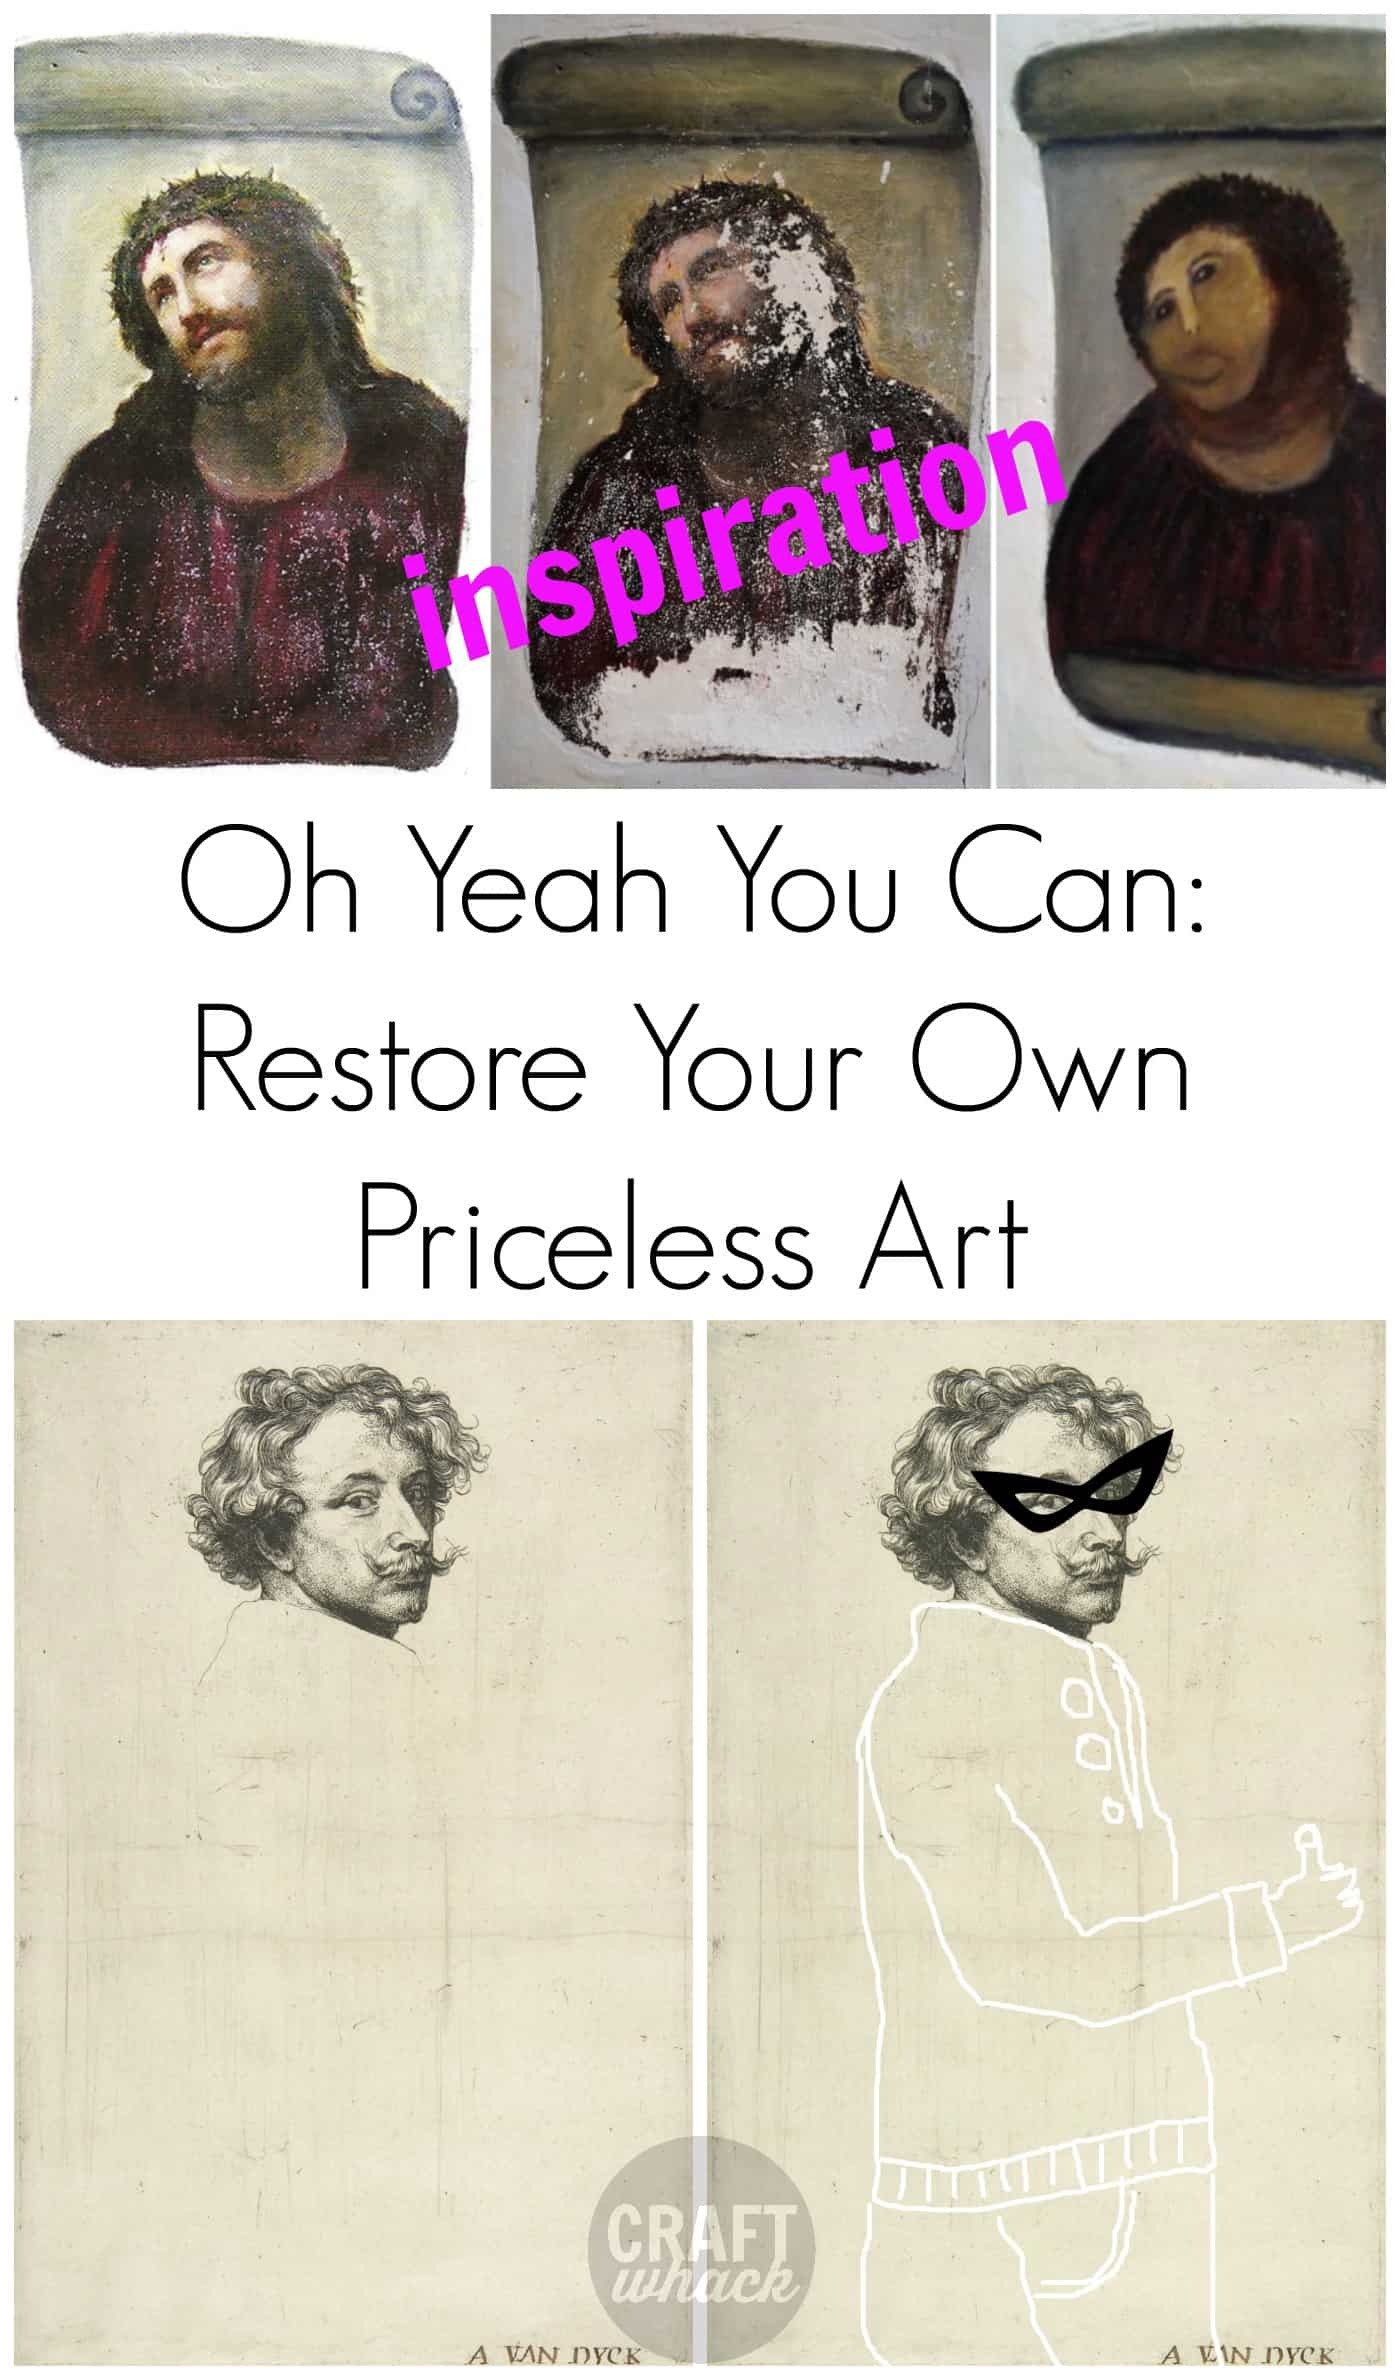 Funny image of badly restored art